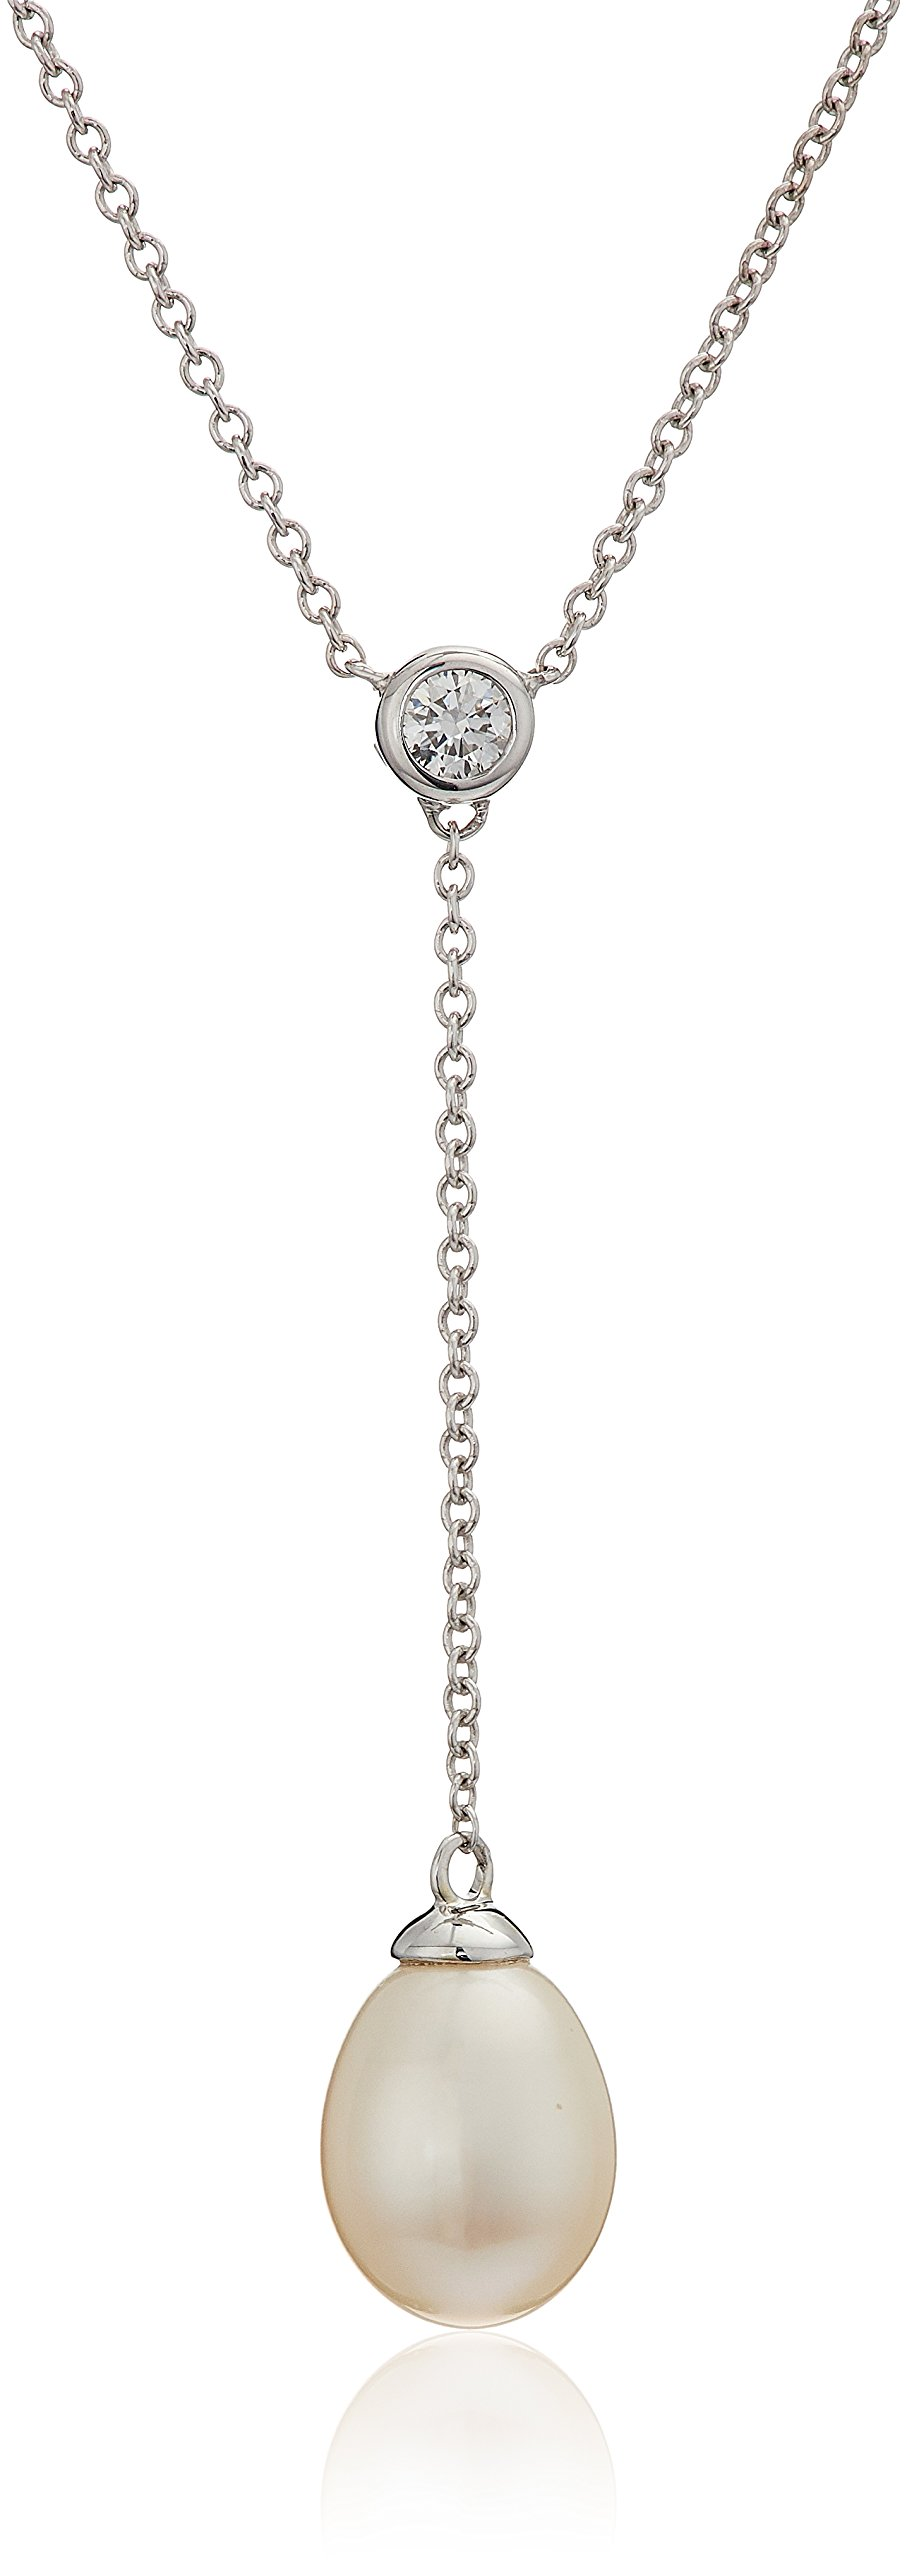 14k White Gold 7.5-8.0mm Cultured Freshwater Pearl Y-Shaped Necklace (1/10 cttw, H-I Color, I1-I2 Clarity)